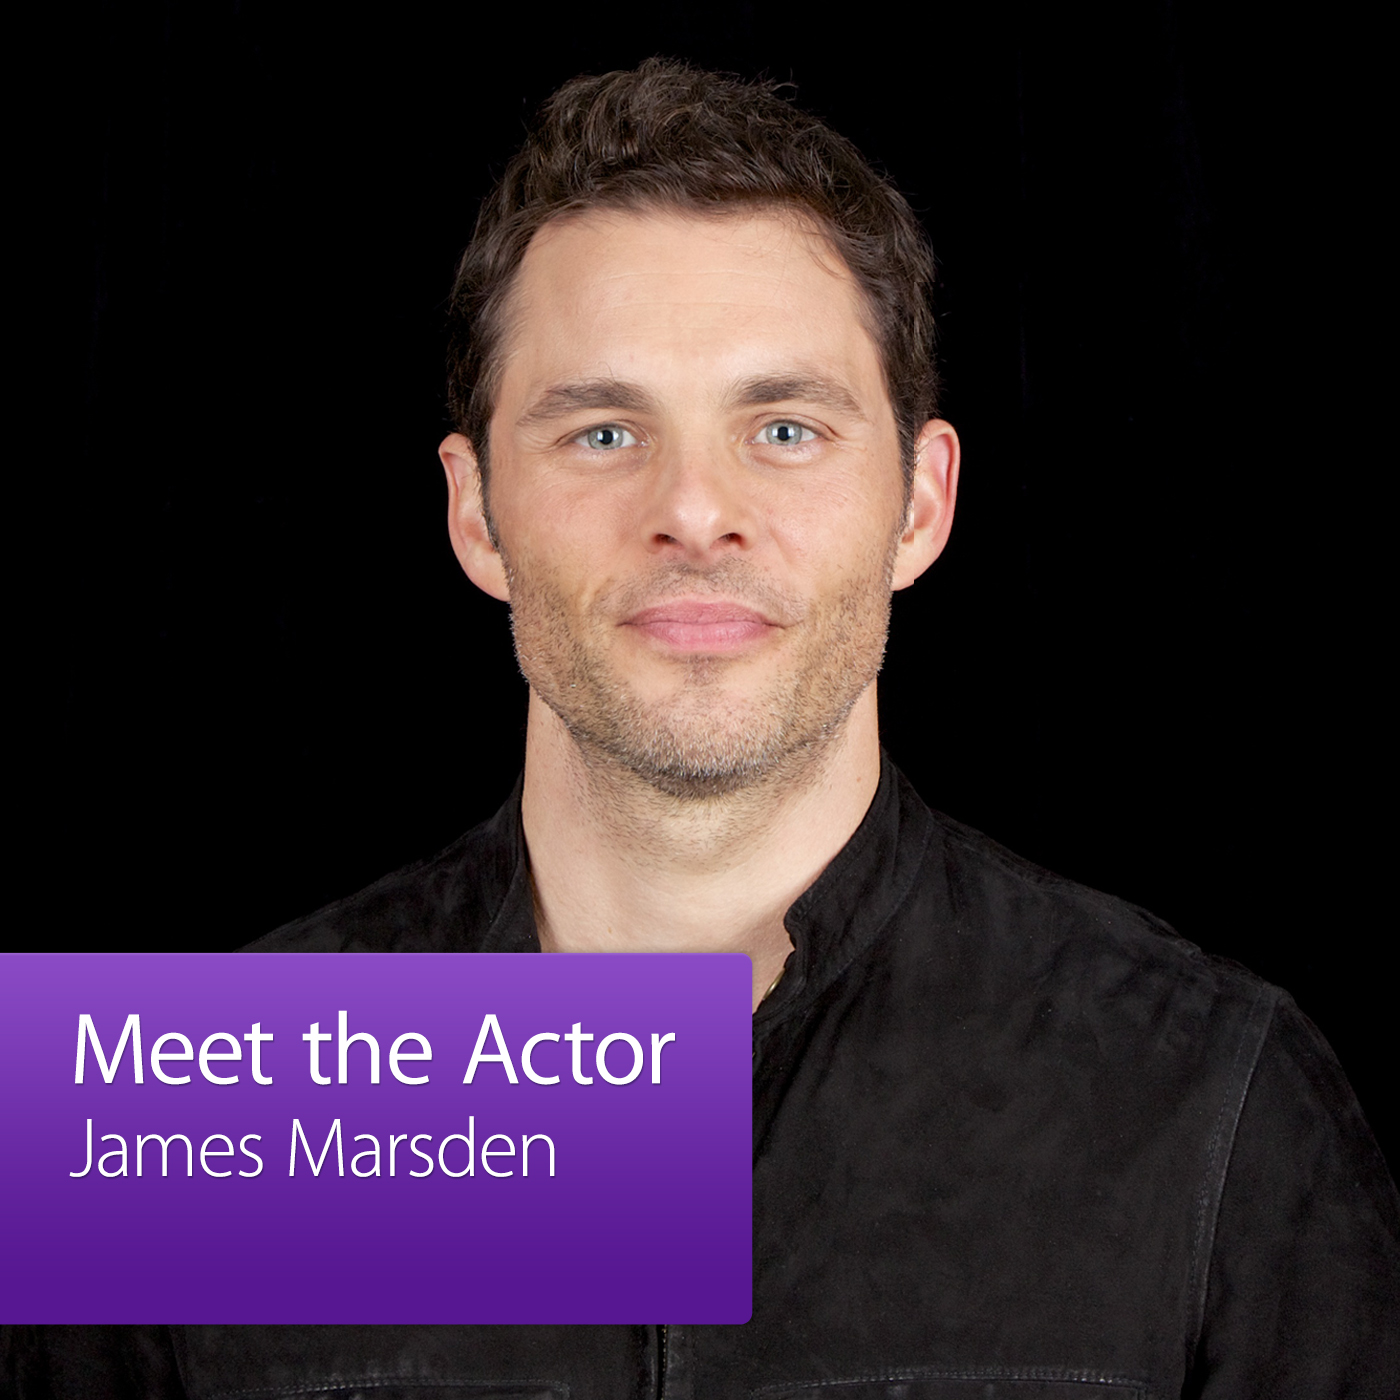 James Marsden: Meet the Actor